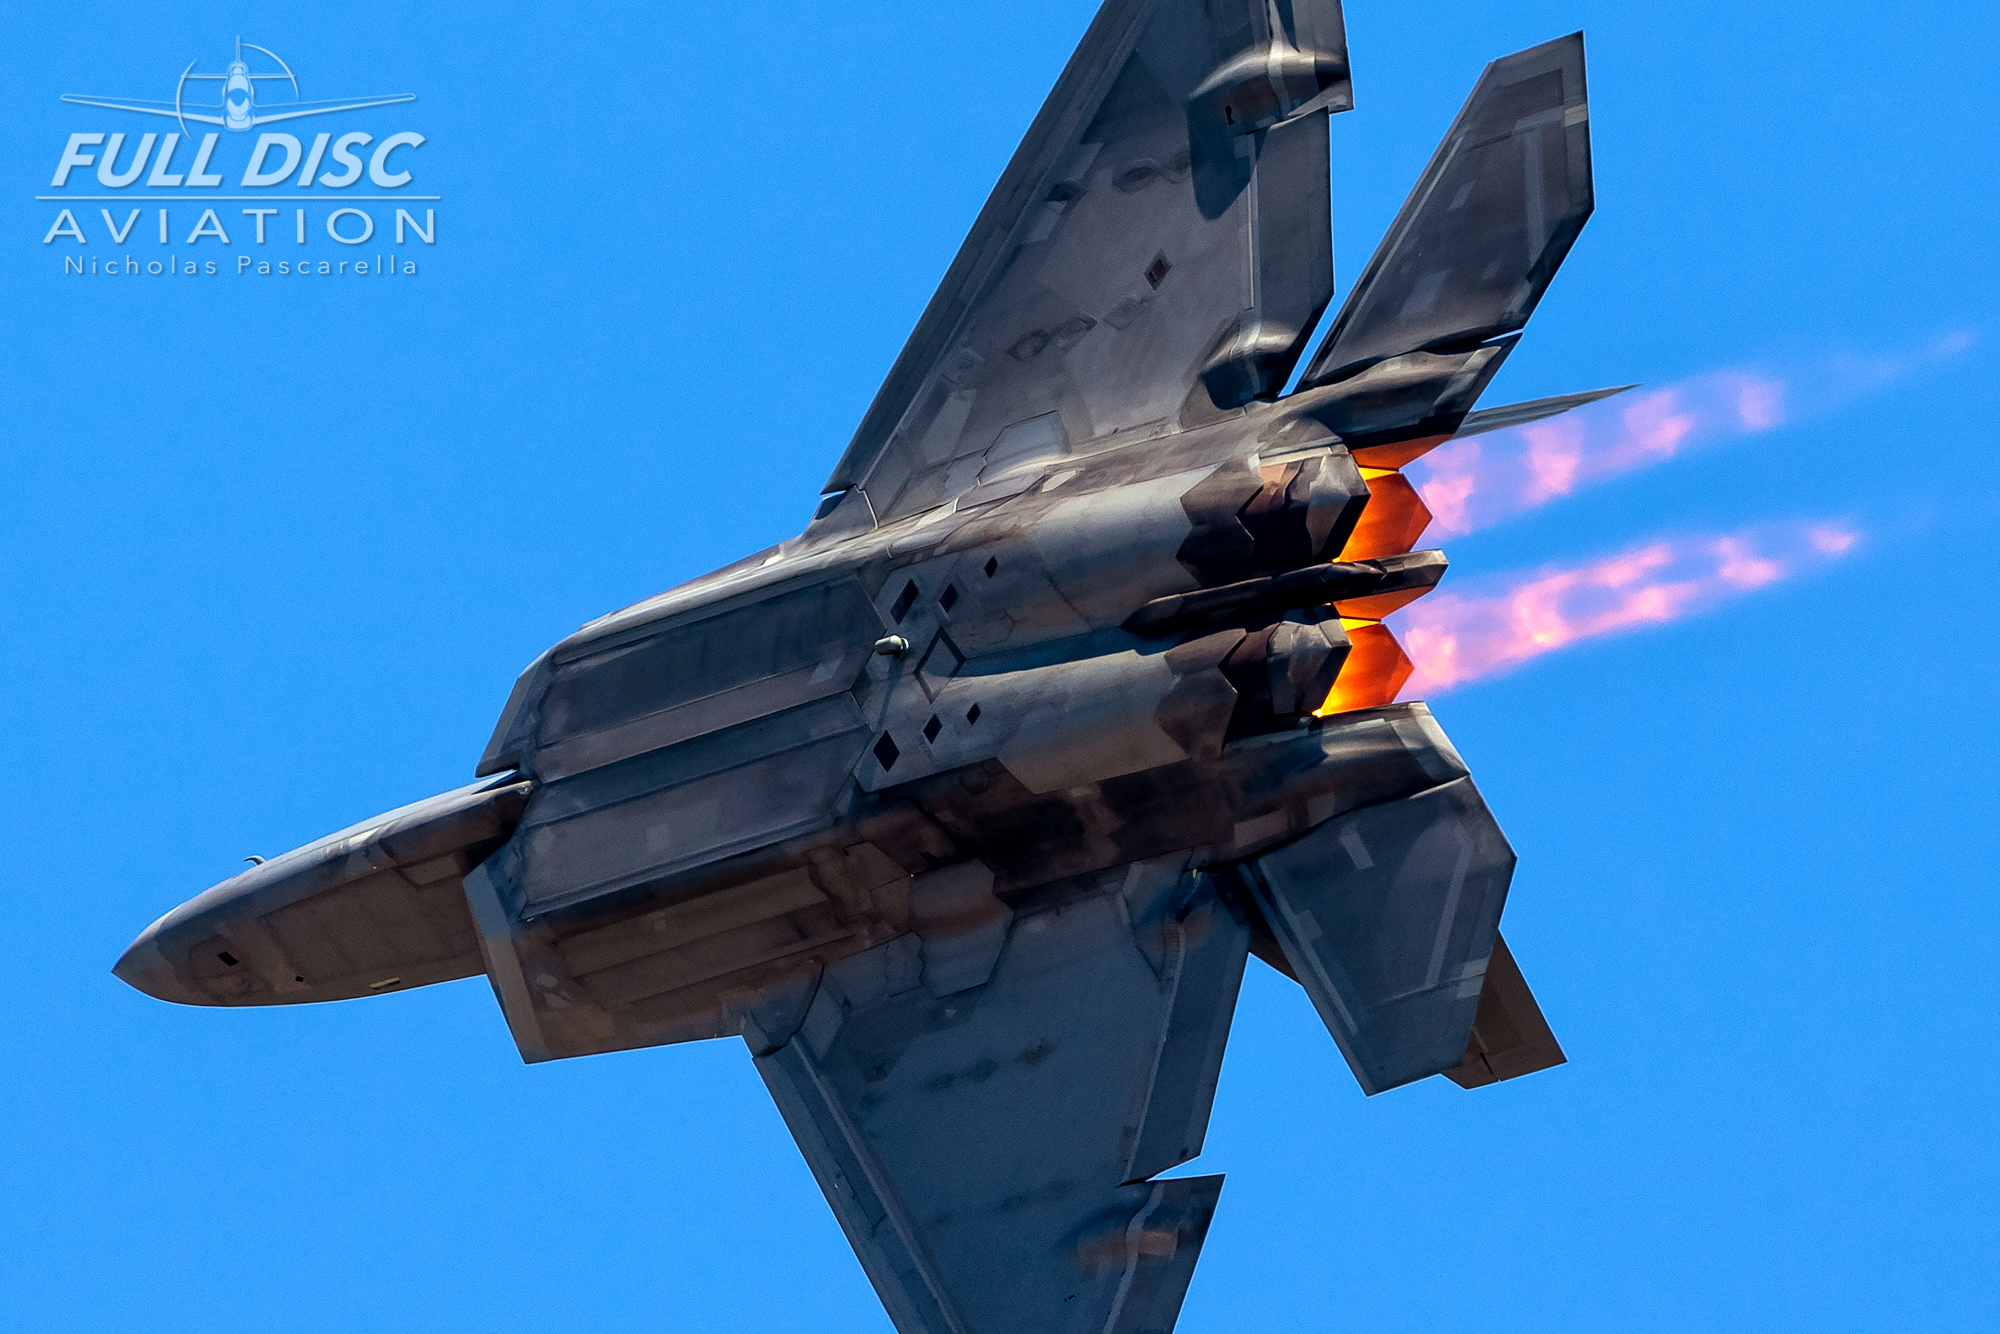 f22_raptordemoteam_burners_flame_turn_nickpascarella_fulldiscaviation.jpg